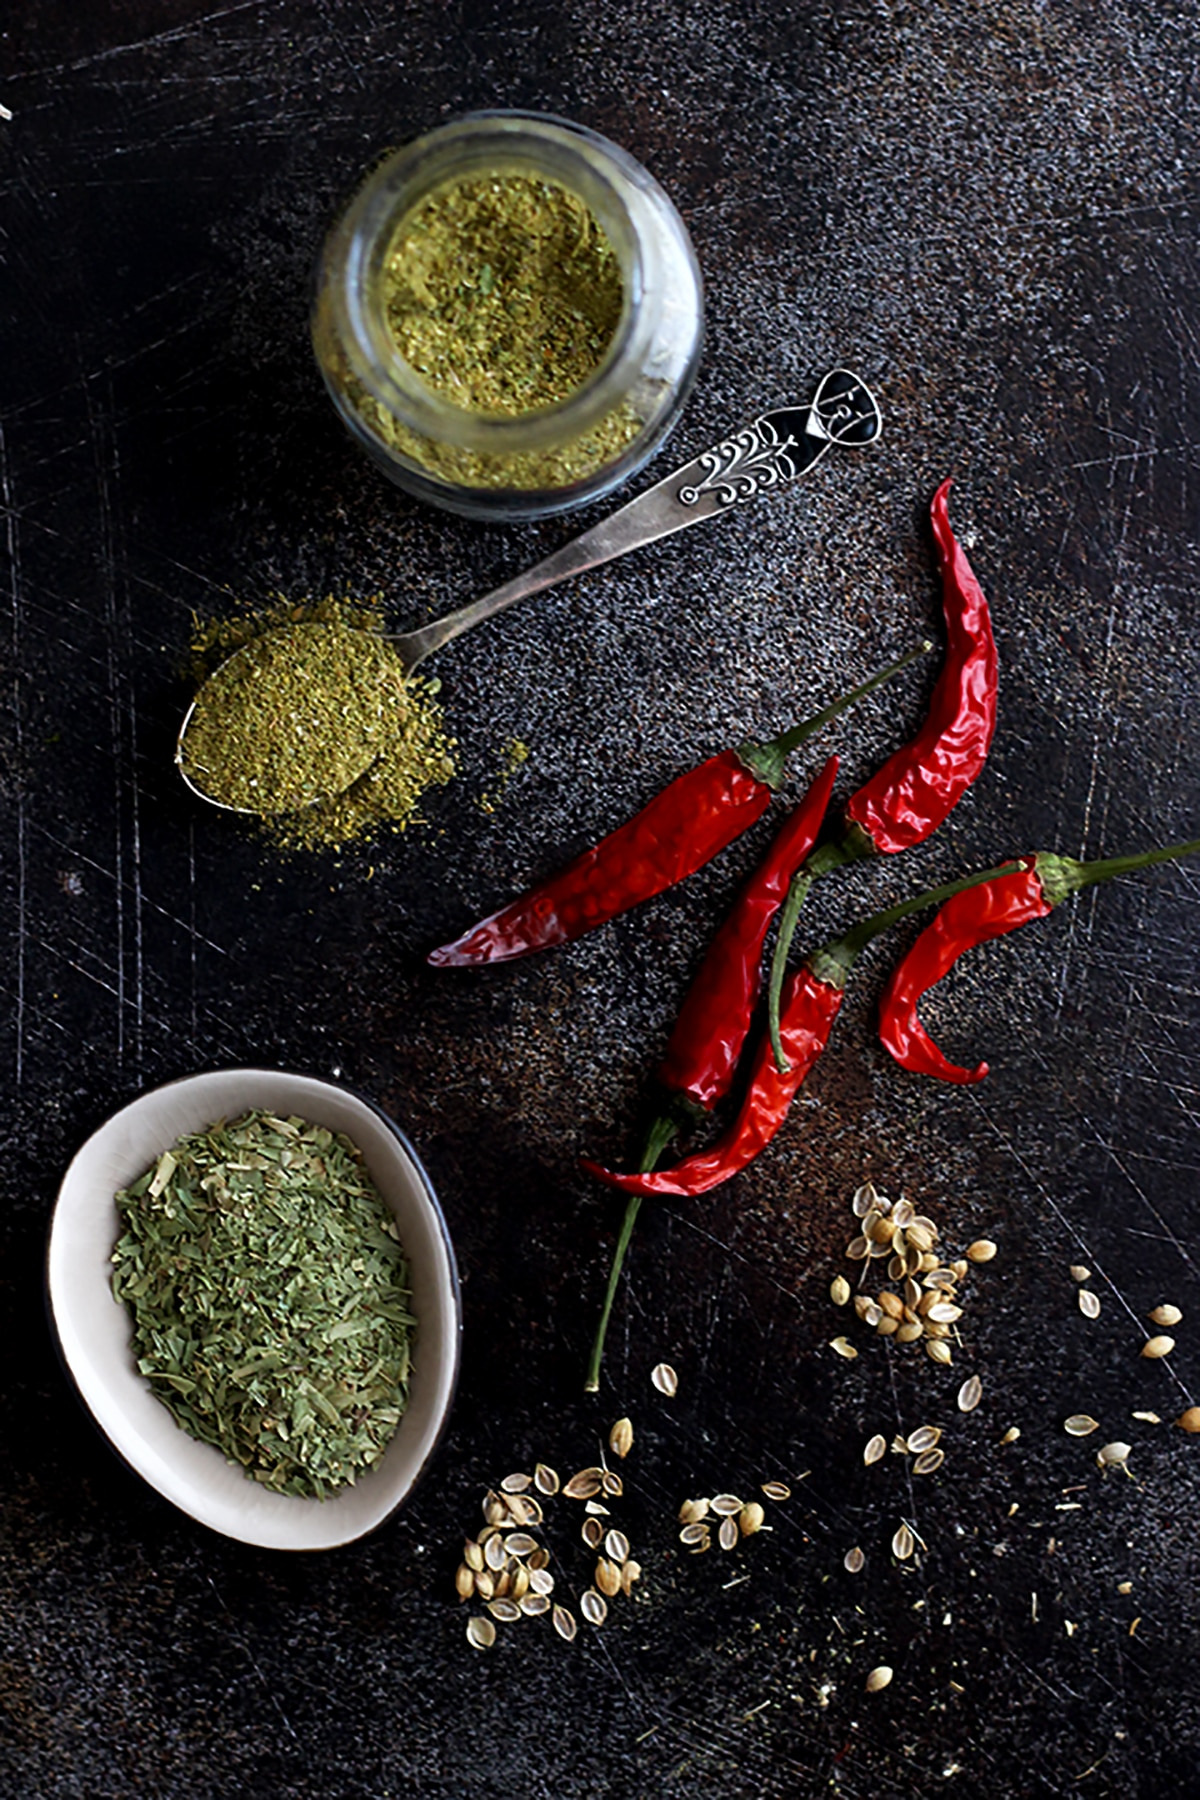 Georgian Spices and Chili Peppers Flatlay.